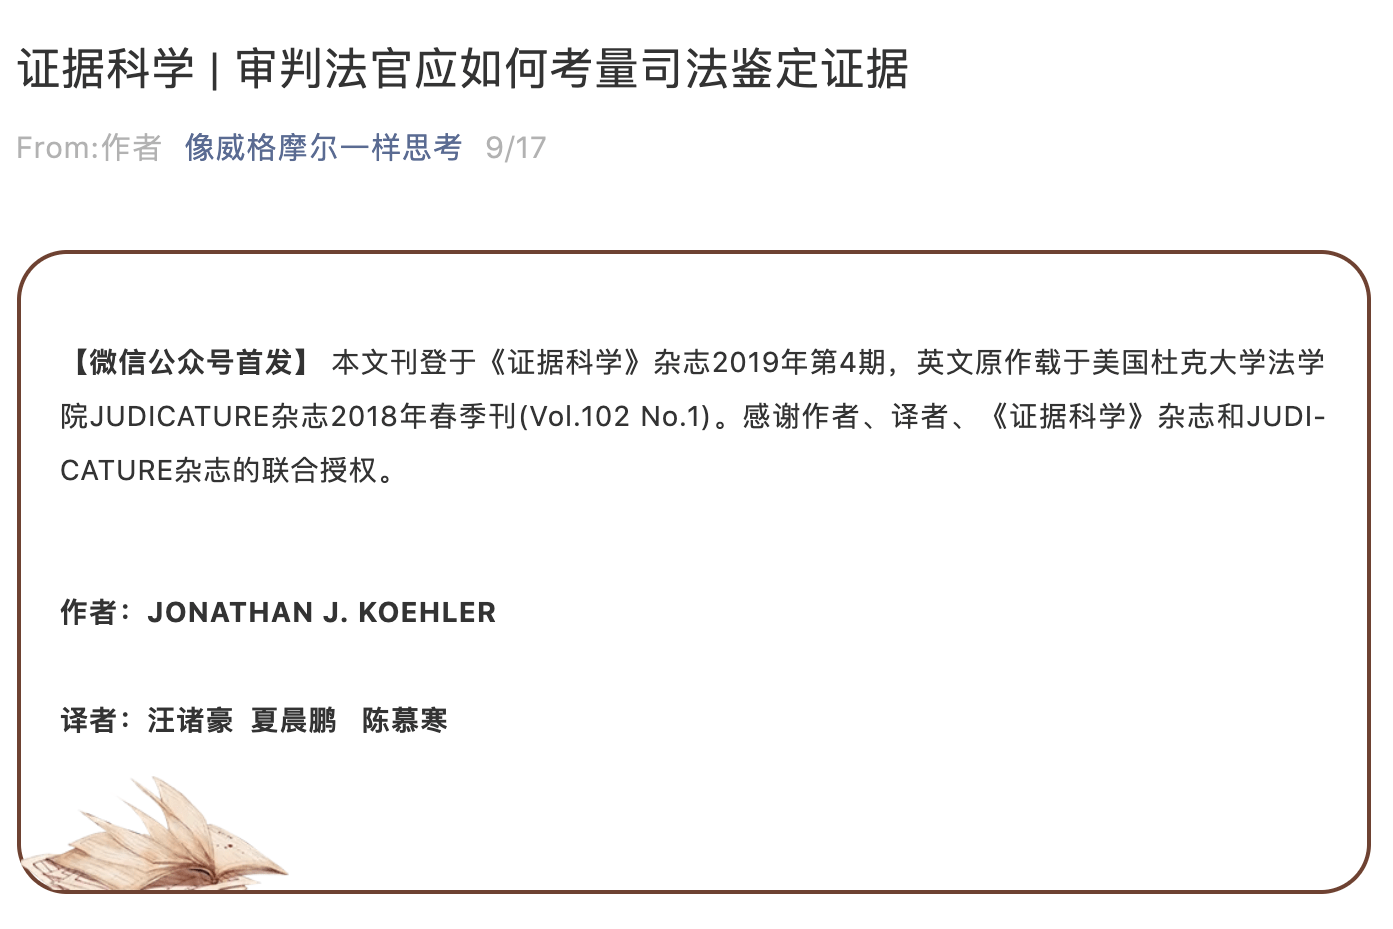 Chinese Translation of Judicature Article